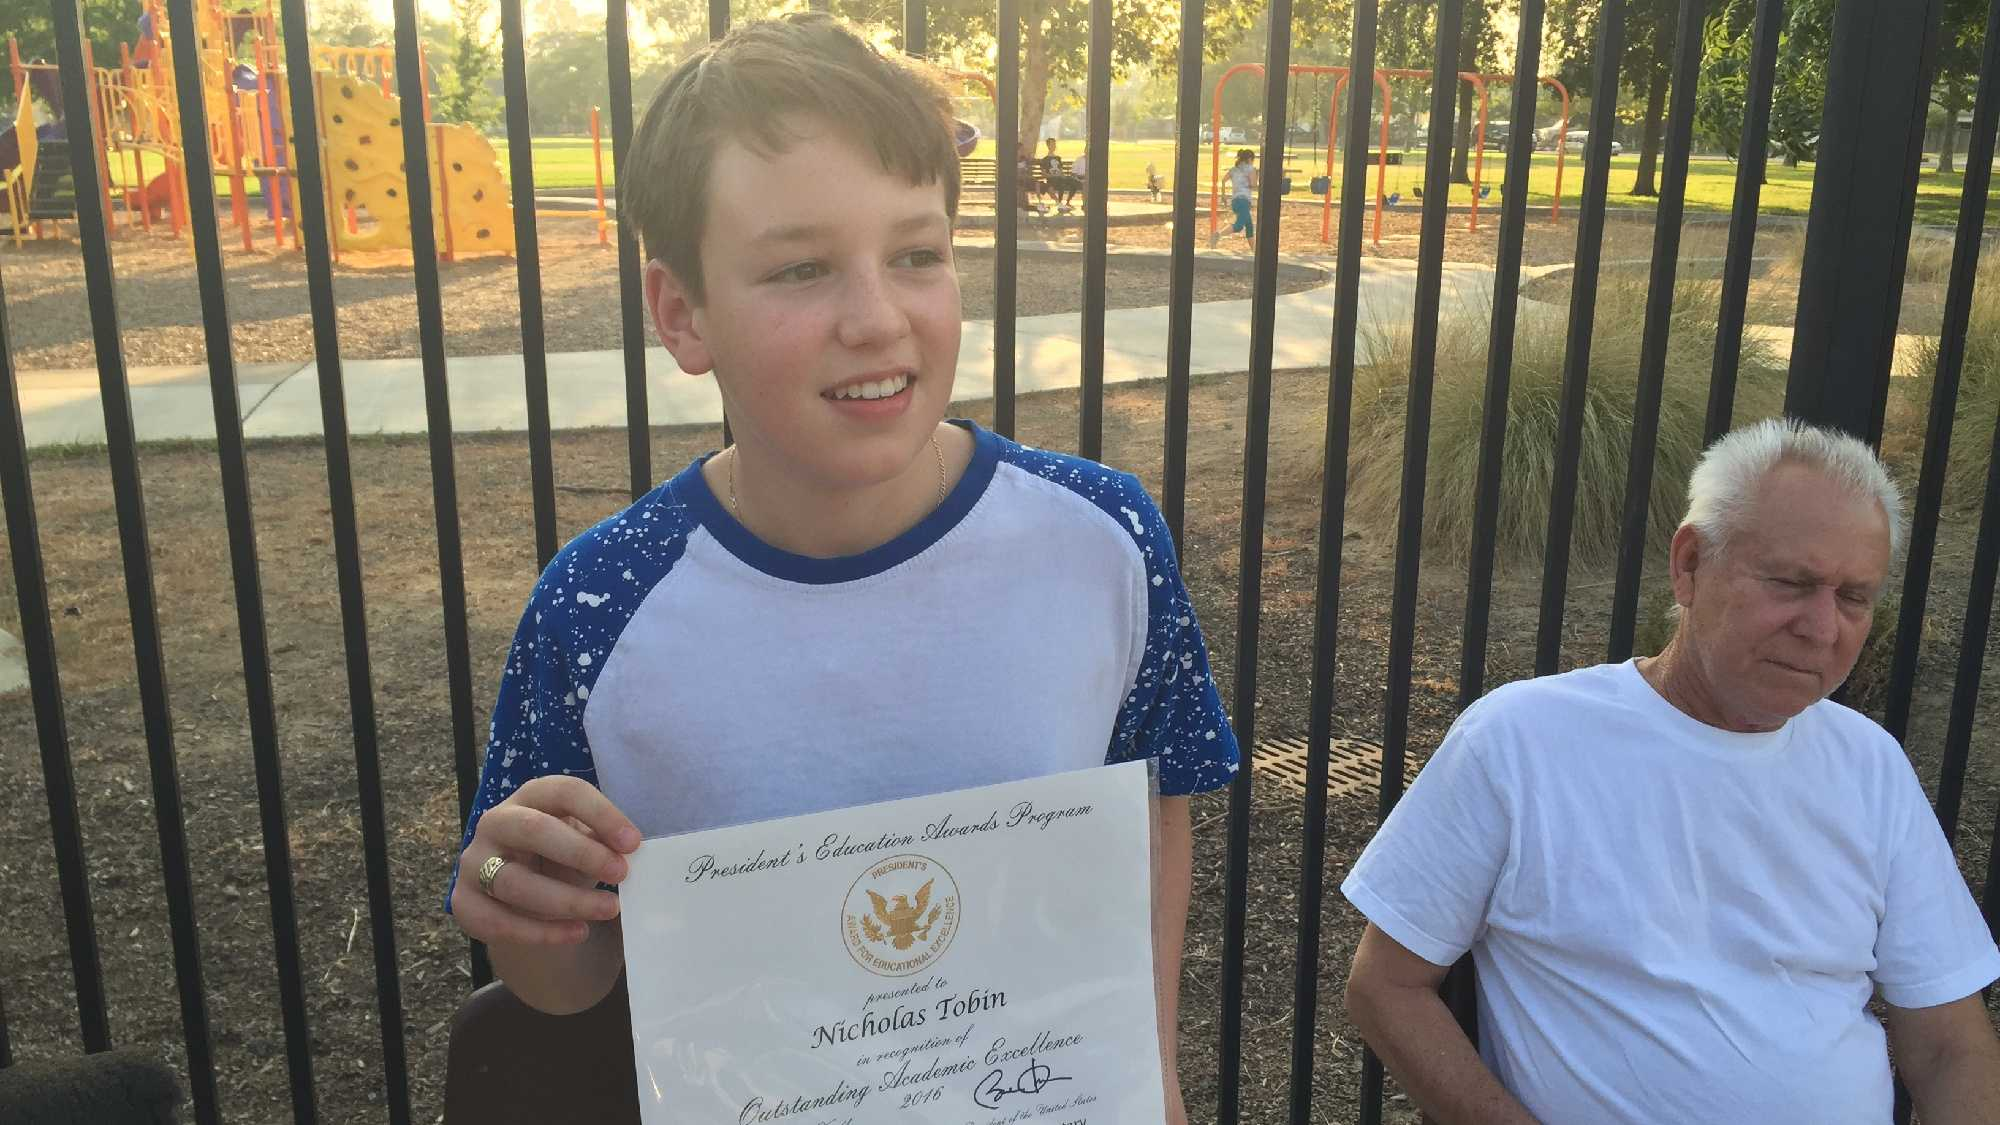 Nick Tobin, 12, holds up his certificate of outstanding academic excellence from President Obama on Wednesday, July 27, 2016.